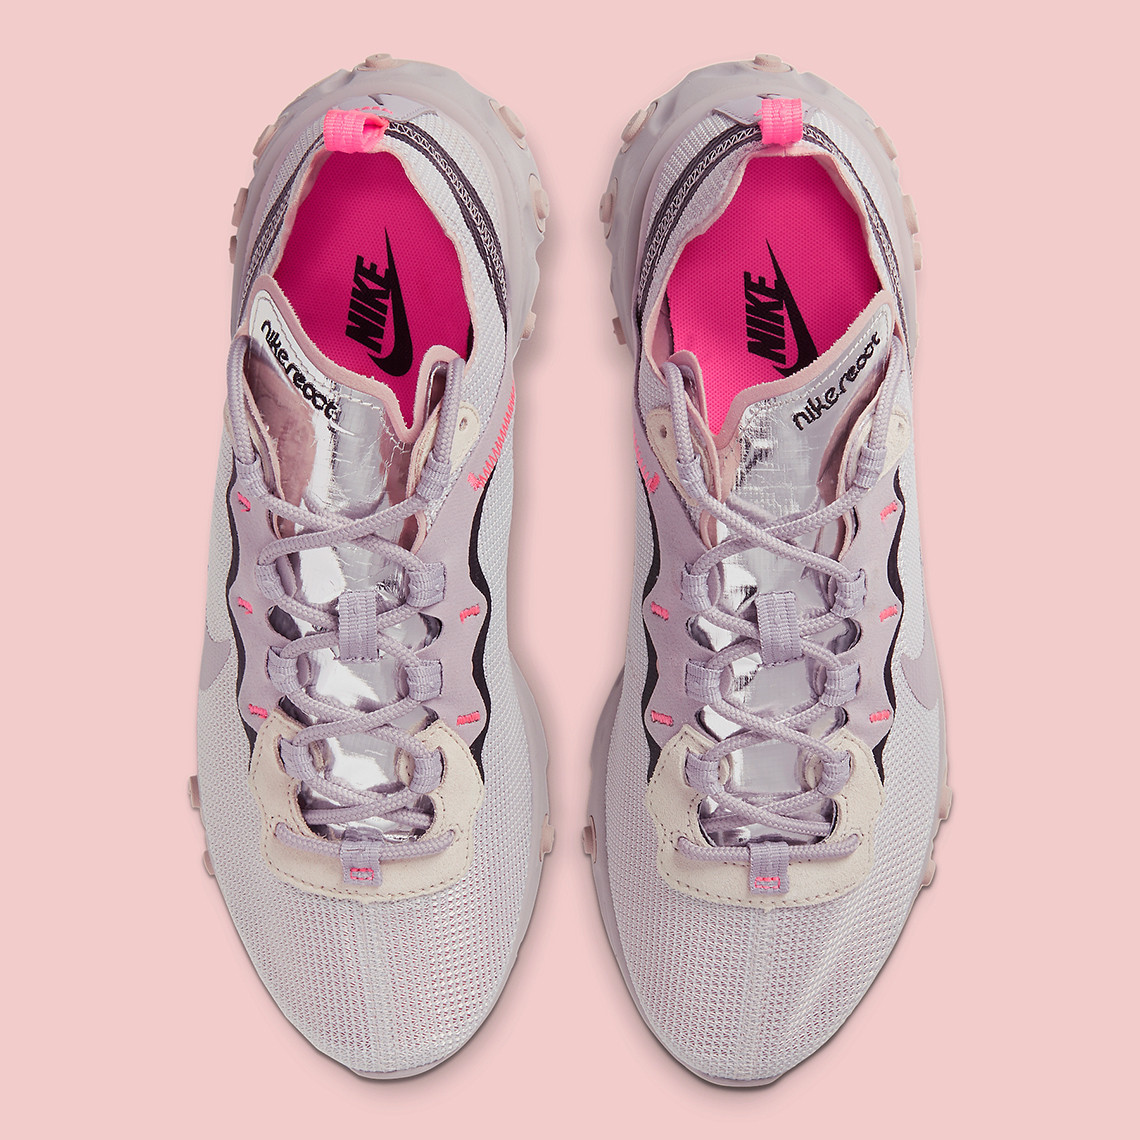 Put The Spring In Your Step With A Pastel Nike React Element 55 Colorway